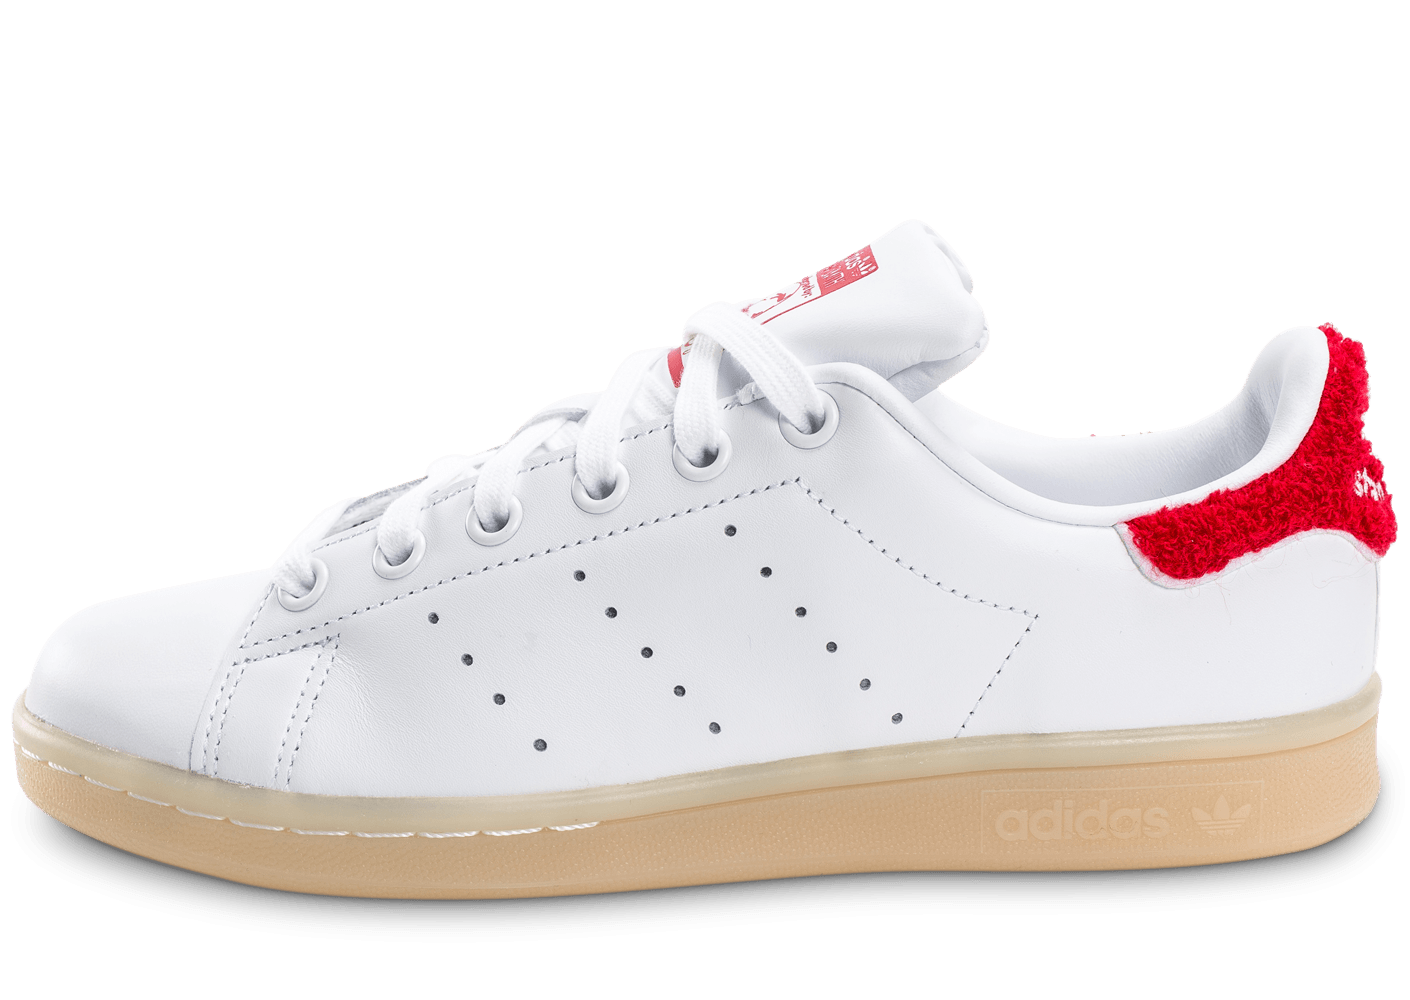 adidas stan smith wool blanche et rouge chaussures adidas chausport. Black Bedroom Furniture Sets. Home Design Ideas